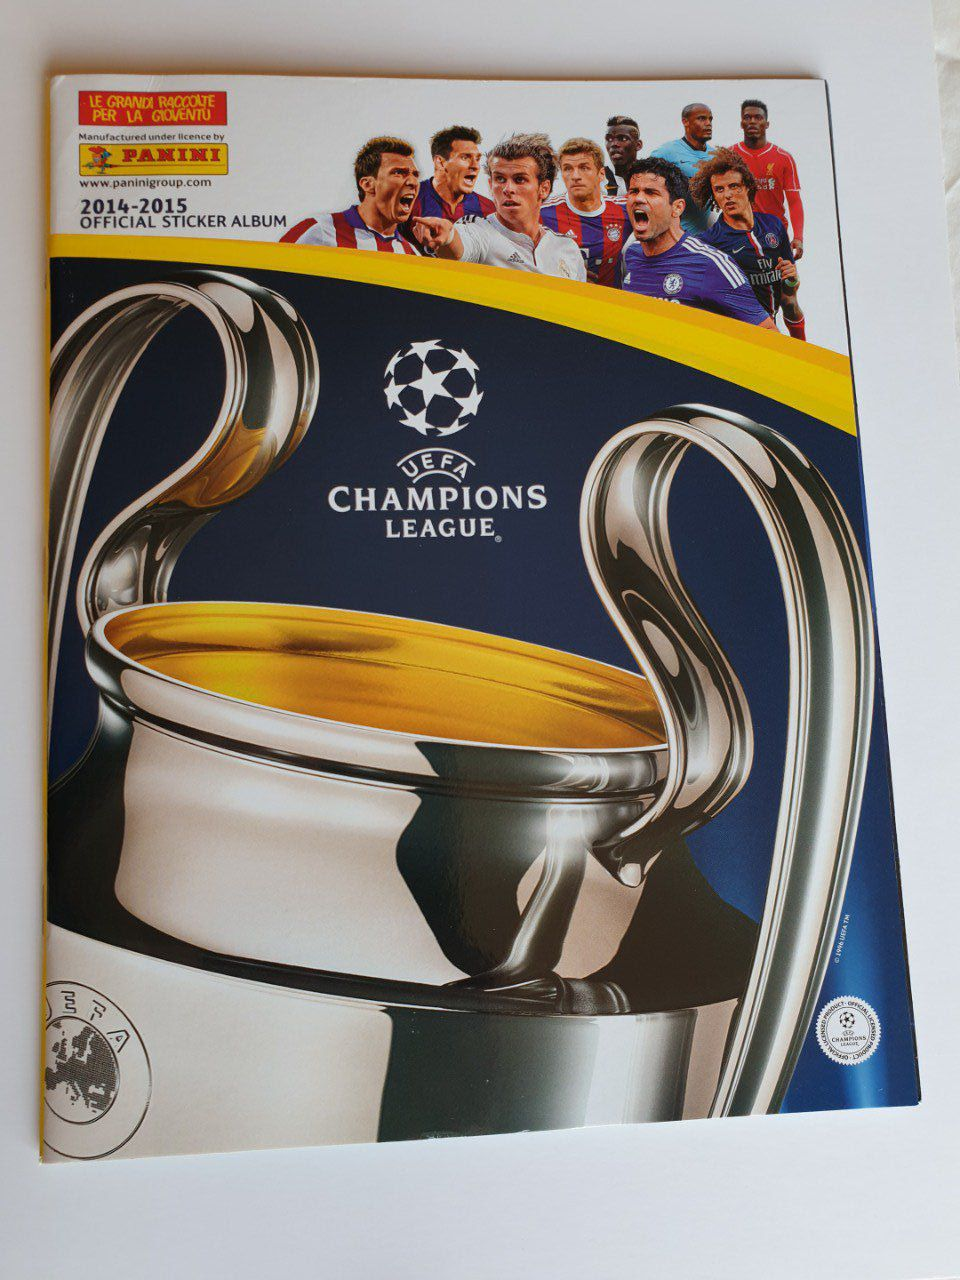 Panini Champions League 2014/2015 Album vide